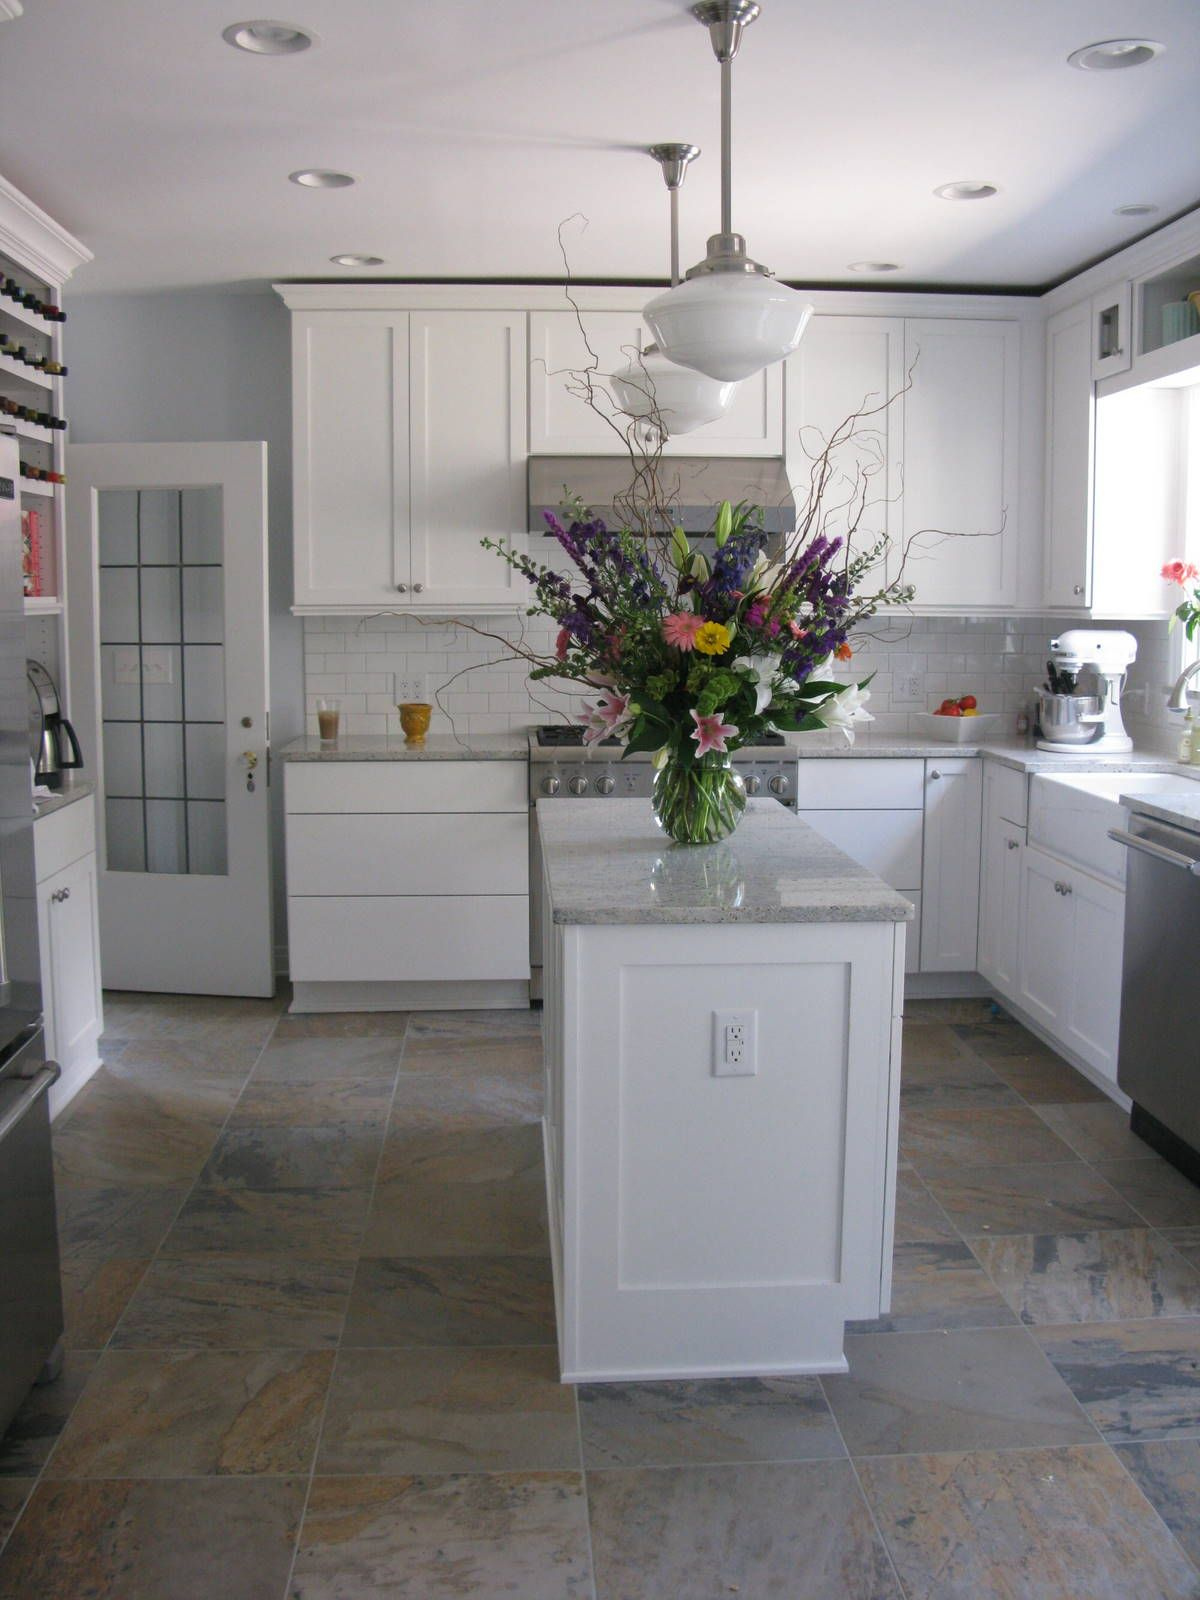 Icicle By Sherwin Williams For Master Bathroom Cute Kitchen Too Kitchen Paint White Kitchen Paint Kitchen Design Modern White